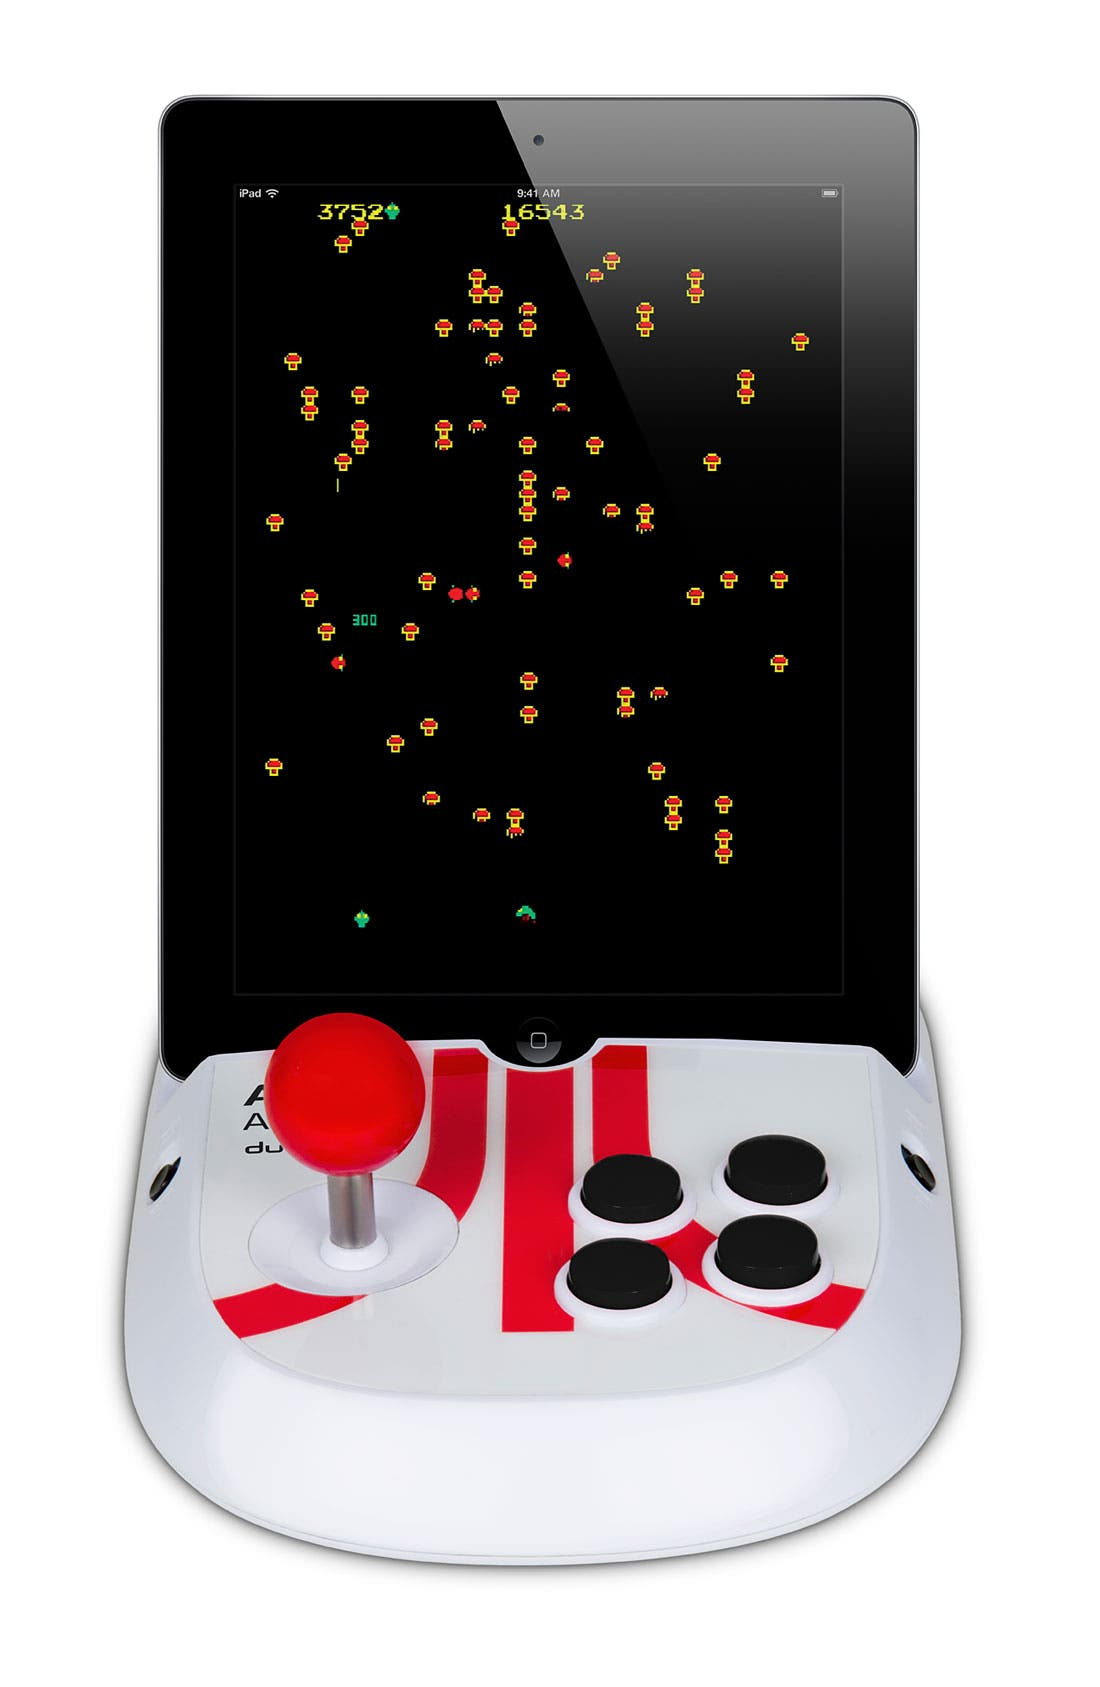 Alternate Image 1 Selected - 'Atari® Arcade Duo Powered' iPad Joystick Game